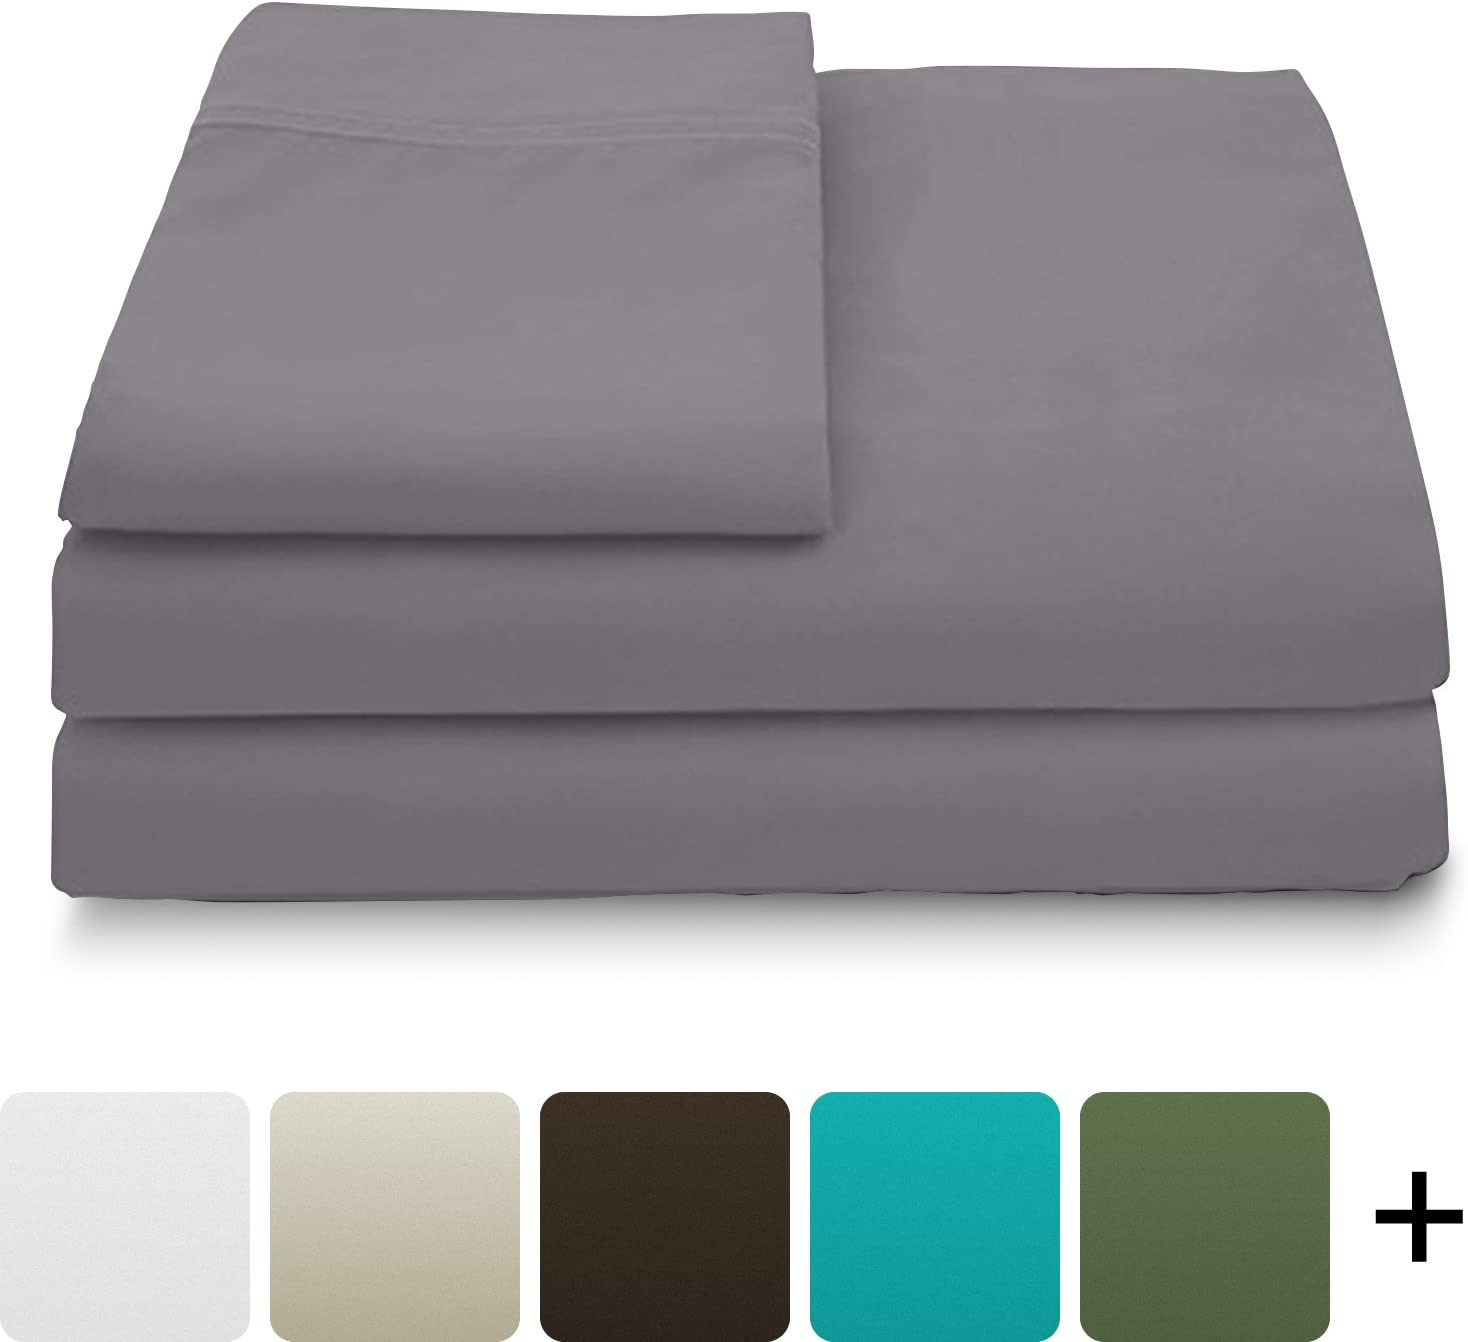 Cosy House Collection Luxury Bamboo Bed Sheet Set - Hypoallergenic Bedding Blend from Natural Bamboo Fiber - Resists Wrinkles - 4 Piece - 1 Fitted Sheet, 1 Flat, 2 Pillowcases - Full, Grey